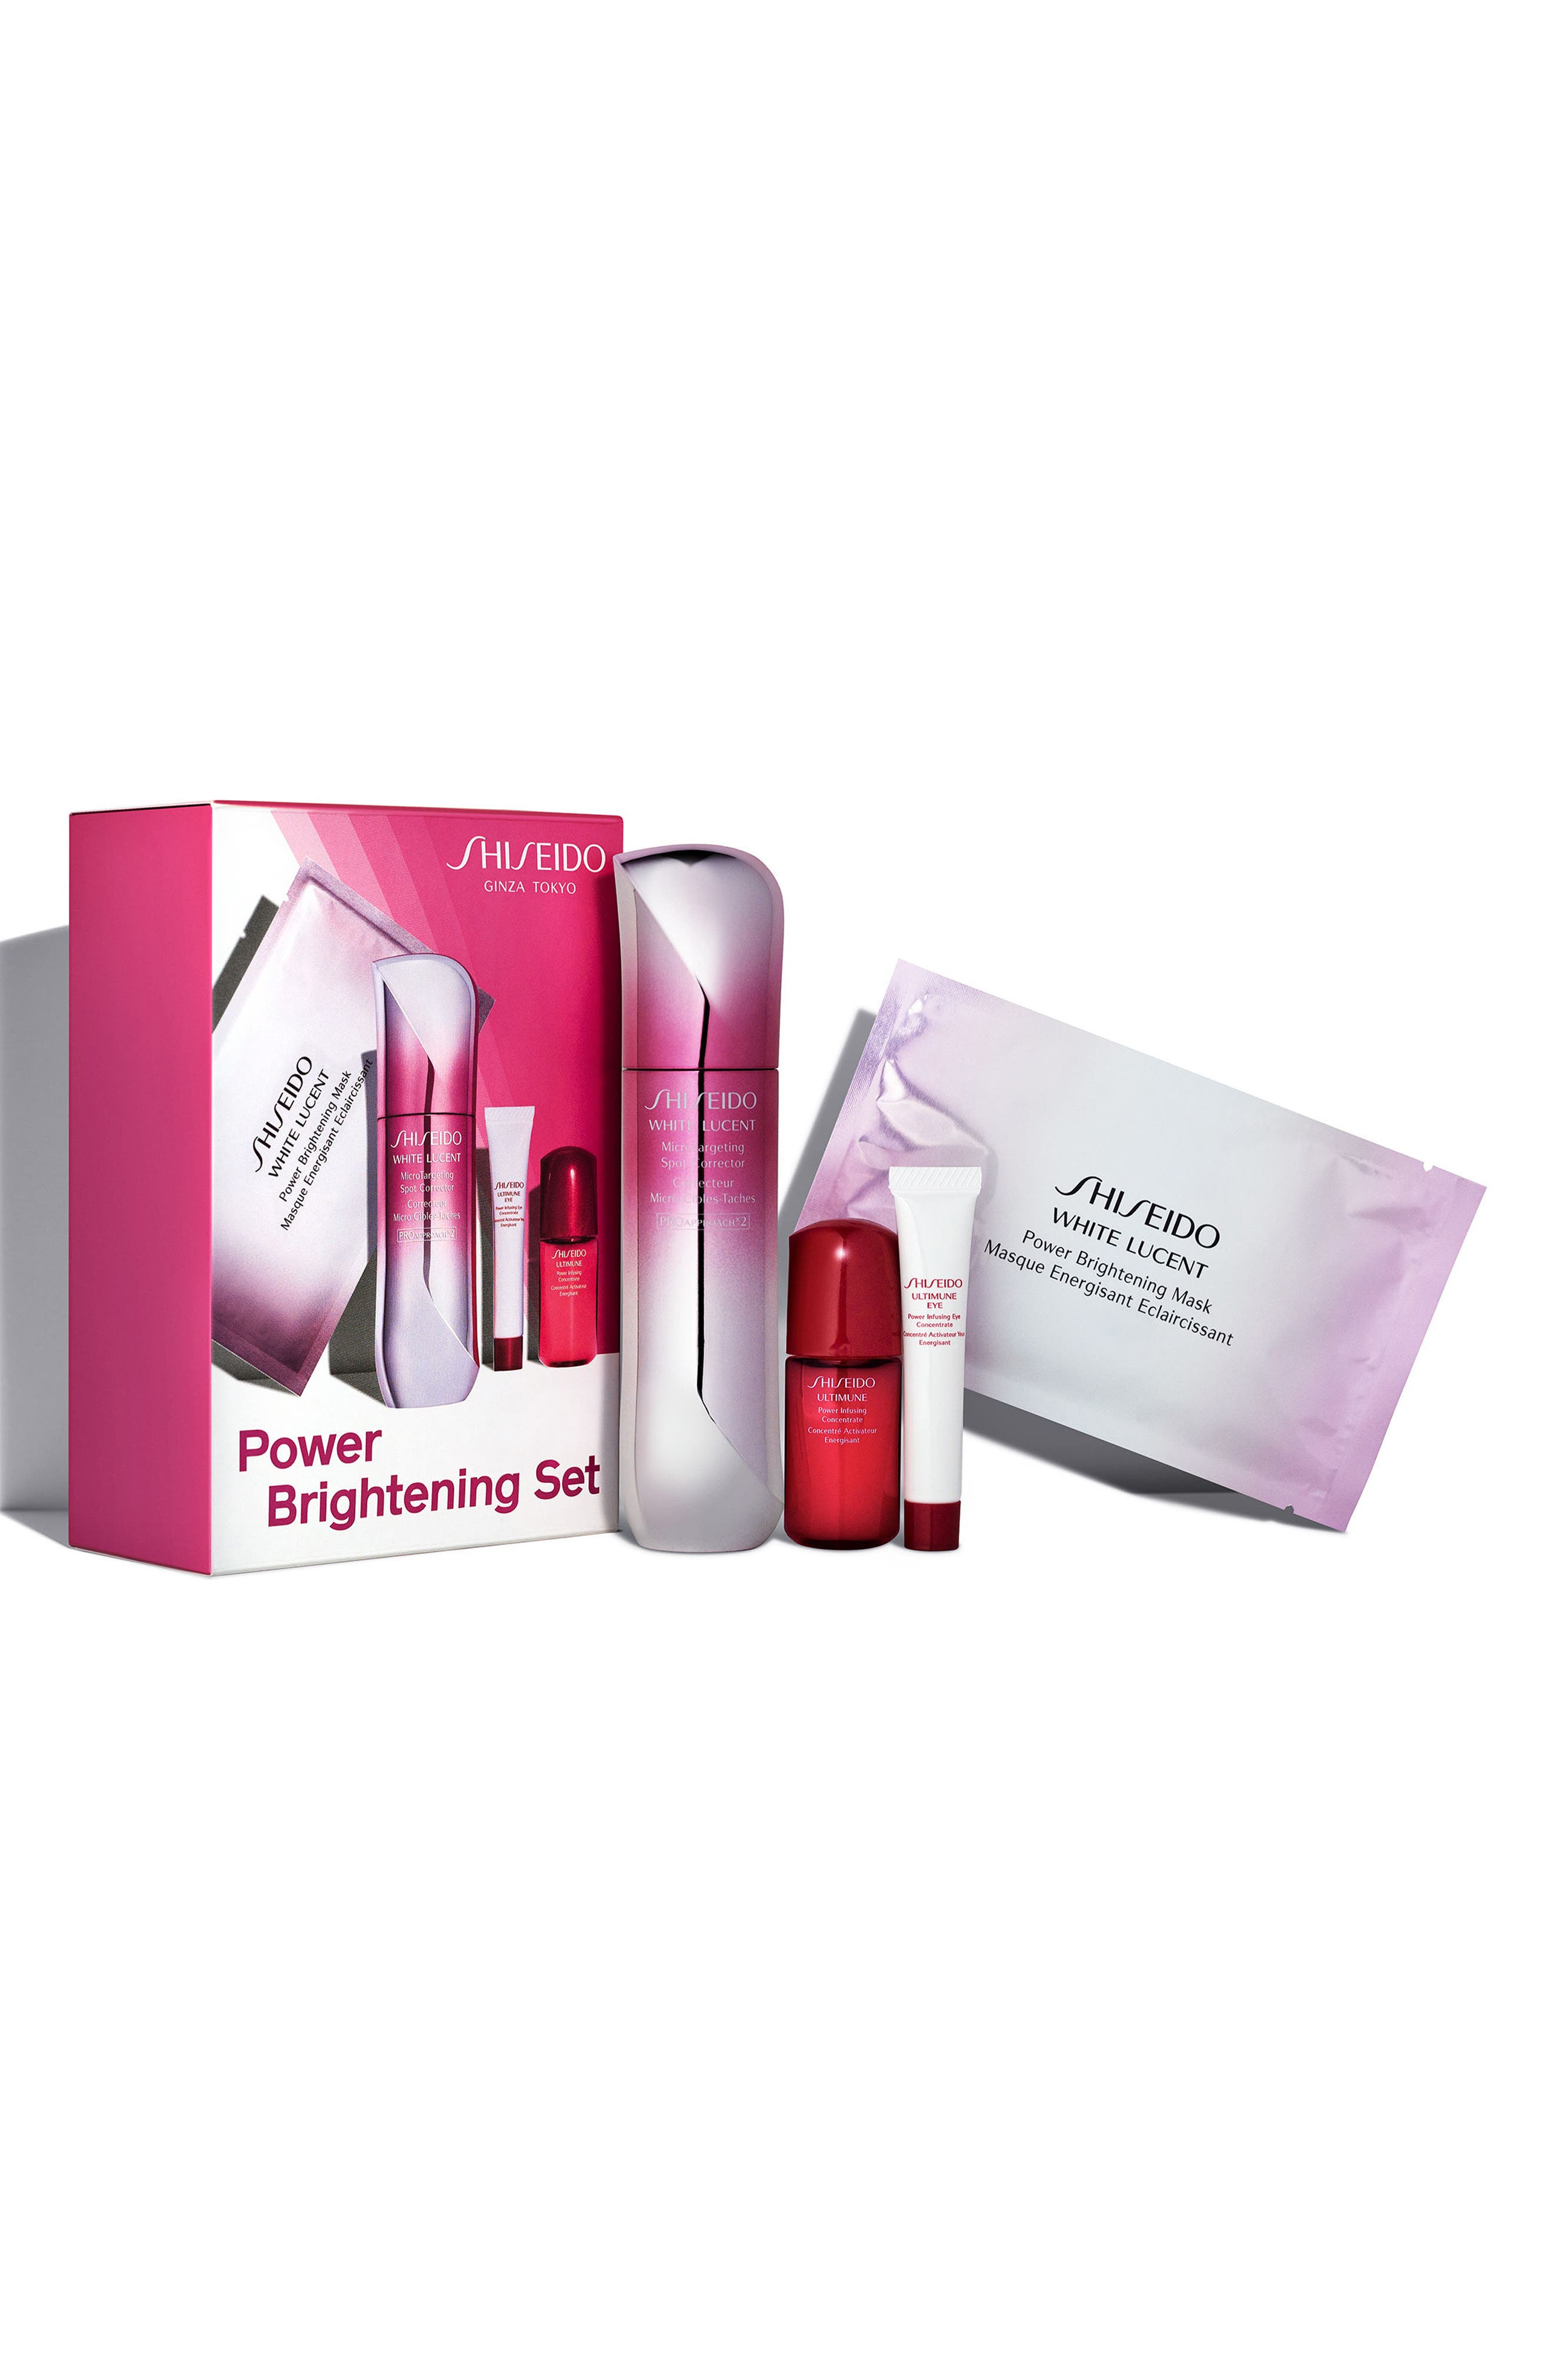 Shiseido White Lucent Brightening Set ($188 Value)